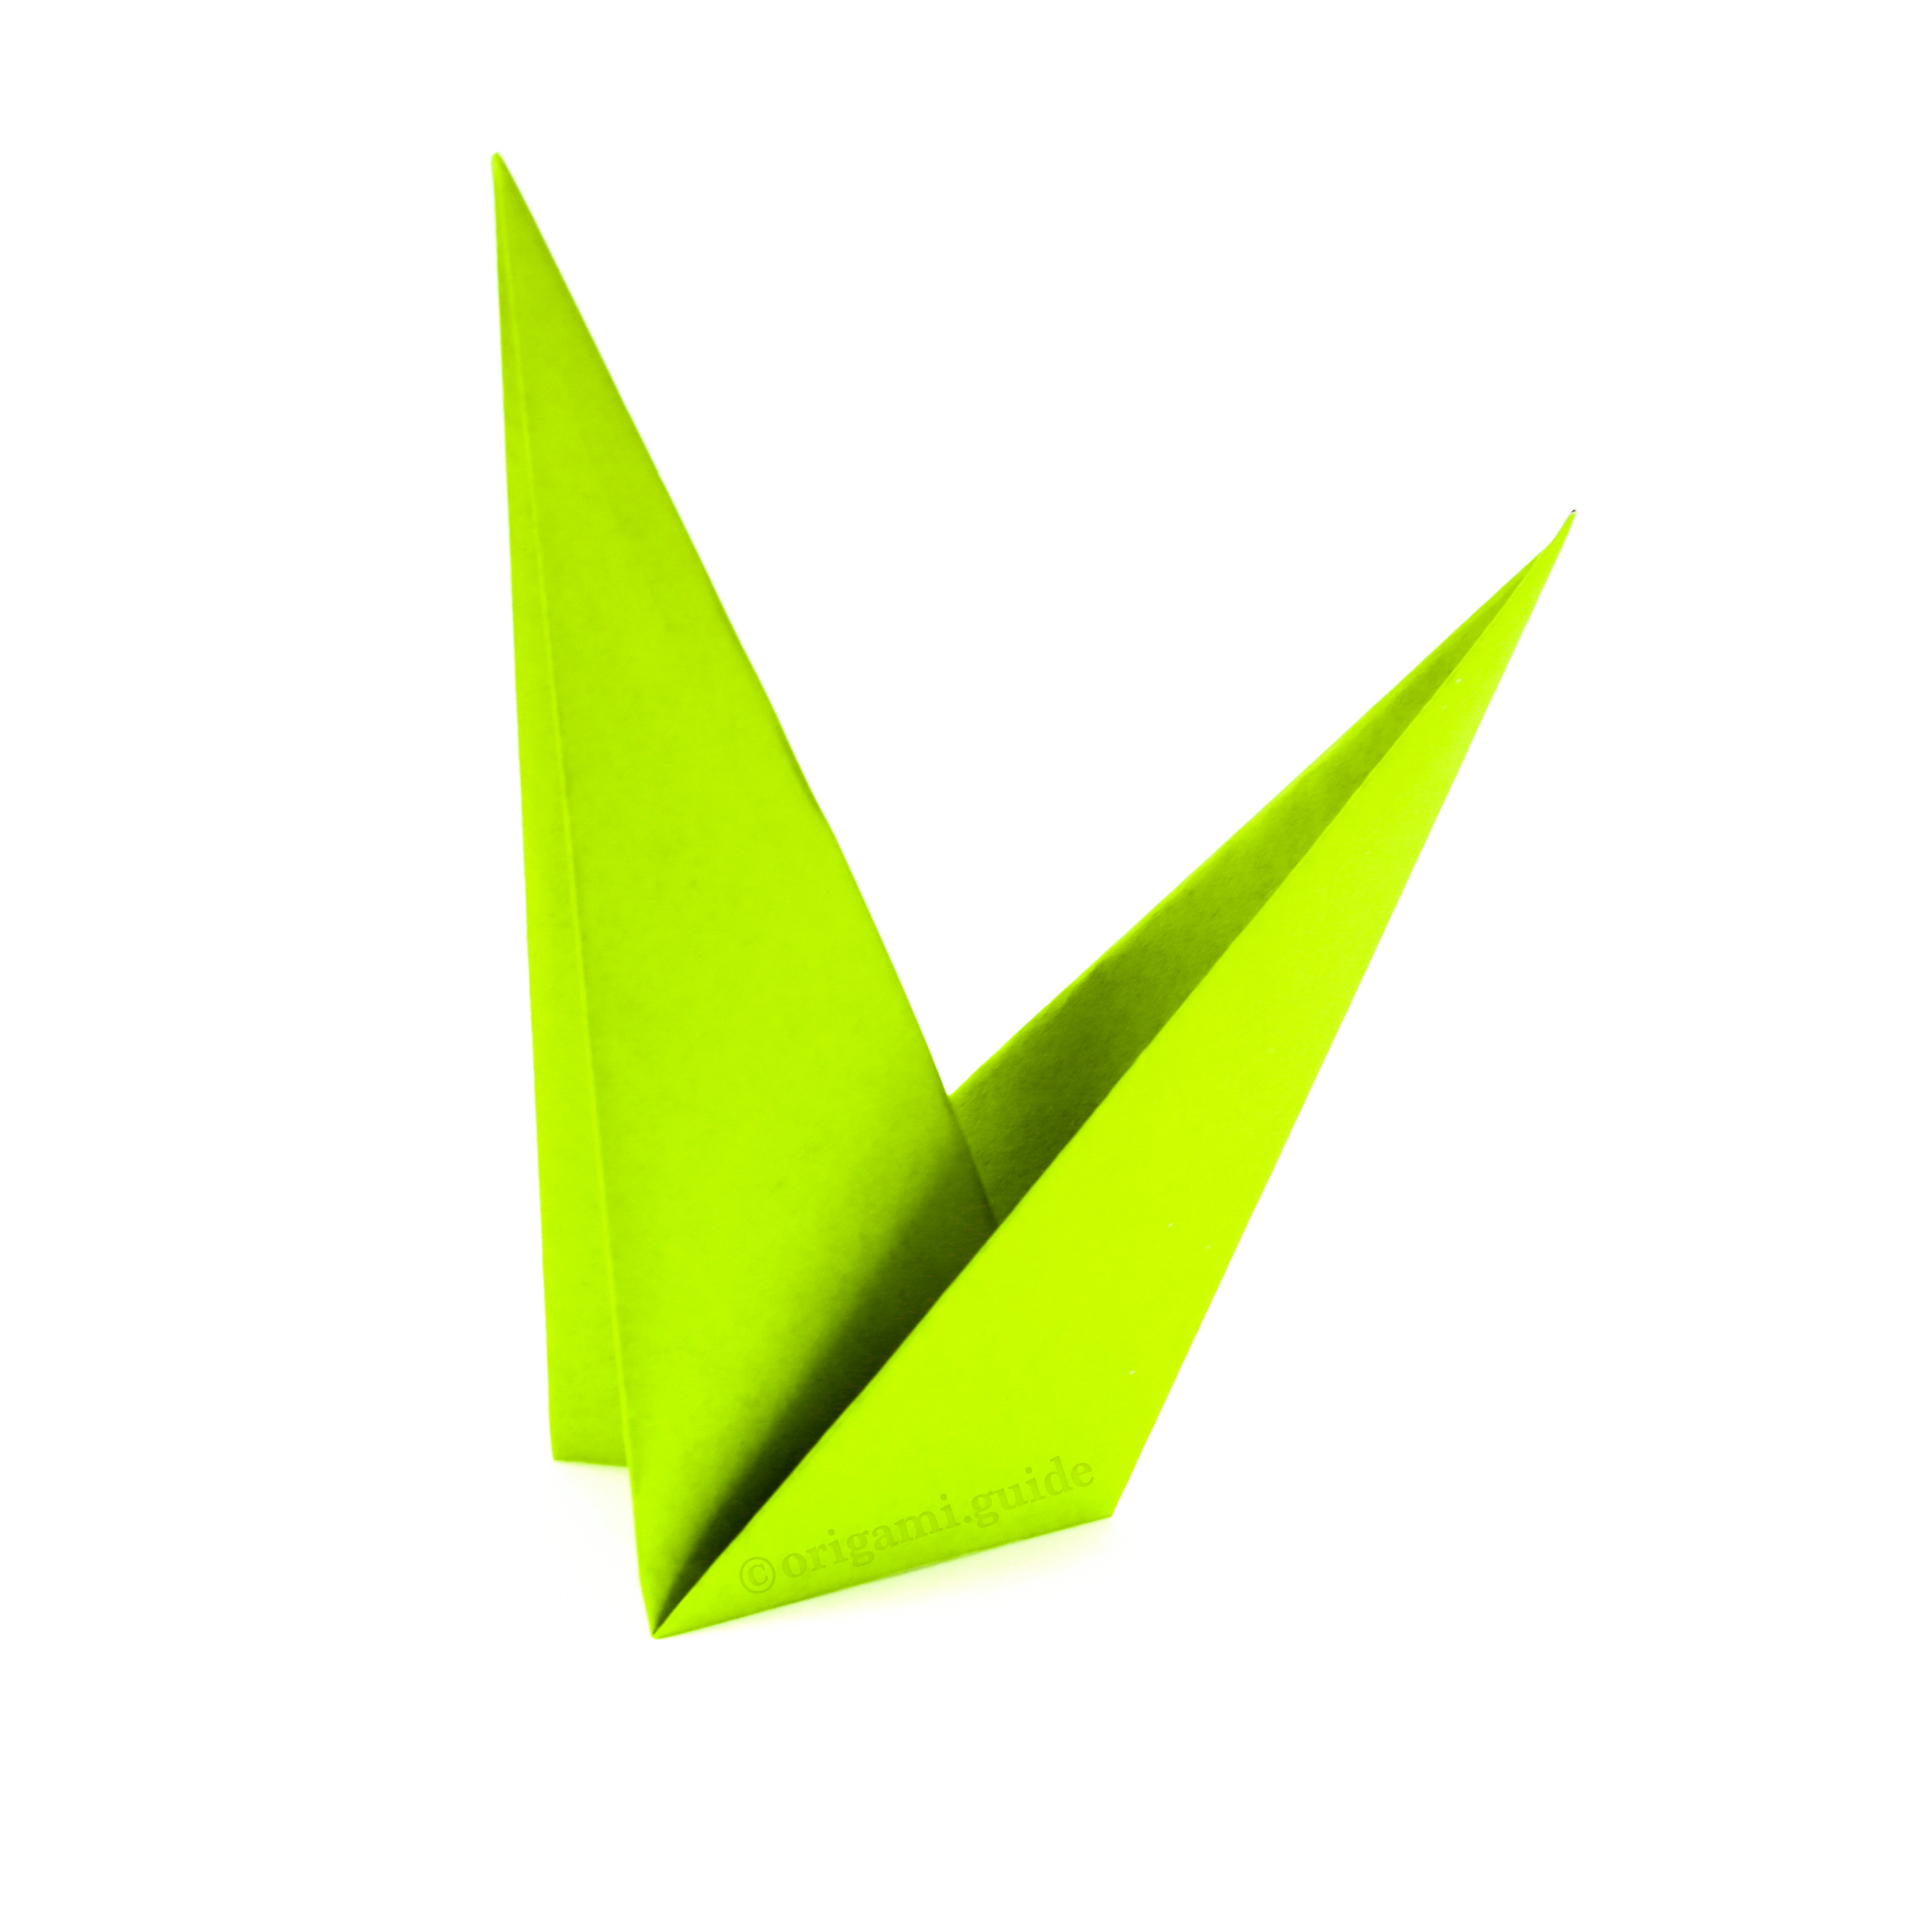 How to make Origami Leaf and Stem for flowers (Henry Phạm) - YouTube | 1920x1920